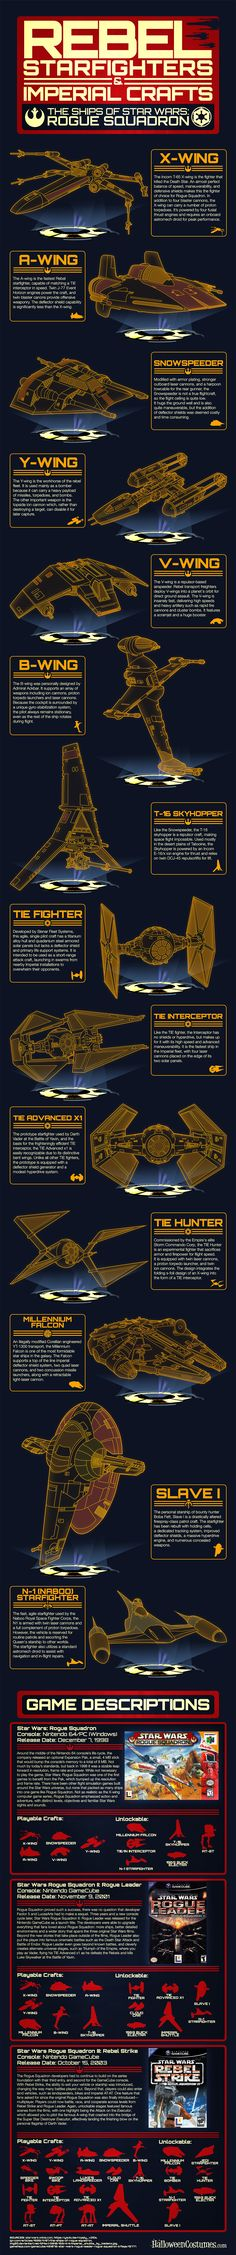 Rebel Starfighters & Imperial Crafts: The Ships of Star Wars: Rogue Squadron [Infographic]